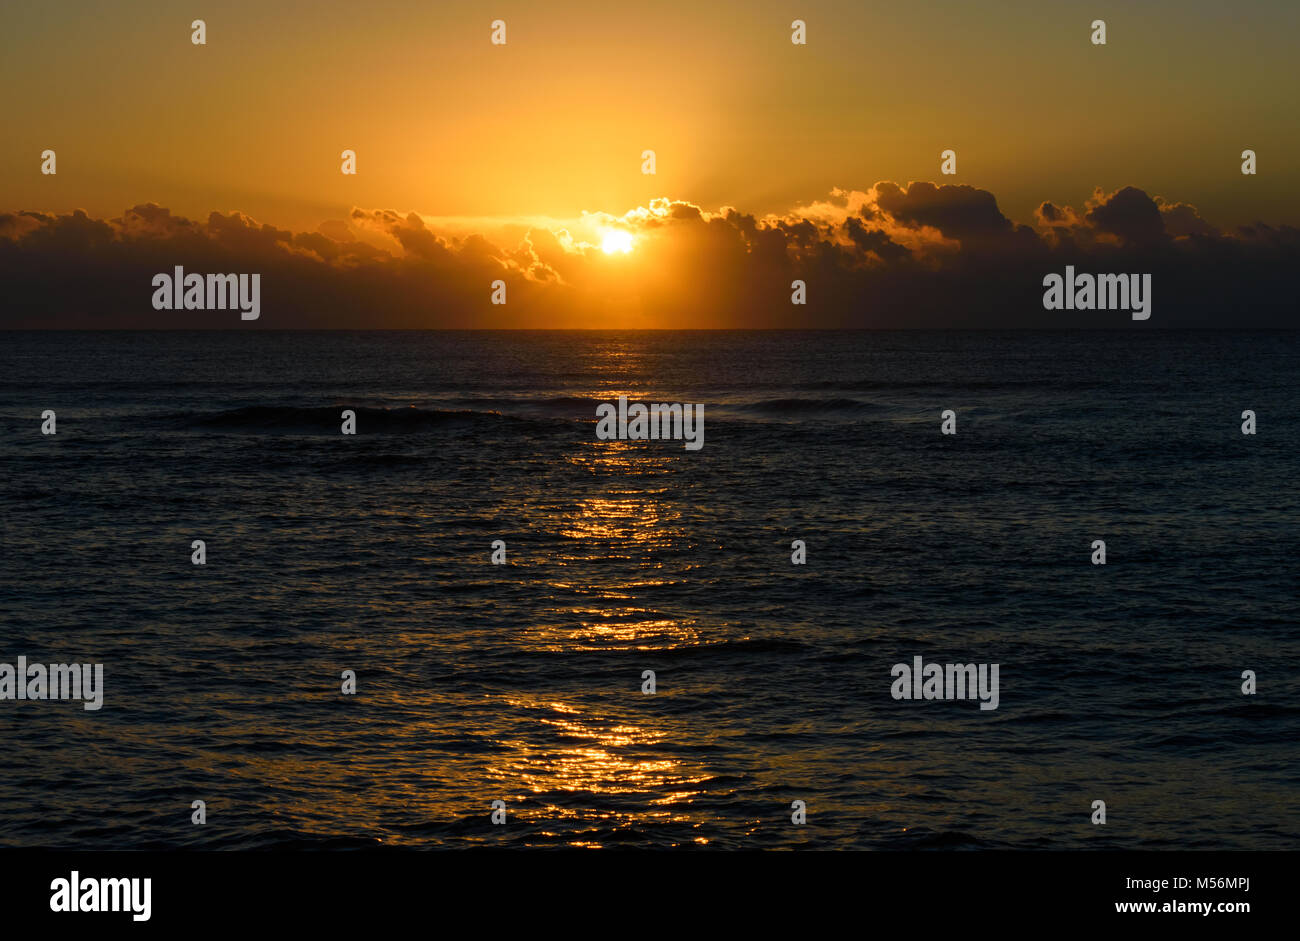 Golden beach sunrise or sunset over the sea. Reflection of the sun on the water. - Stock Image